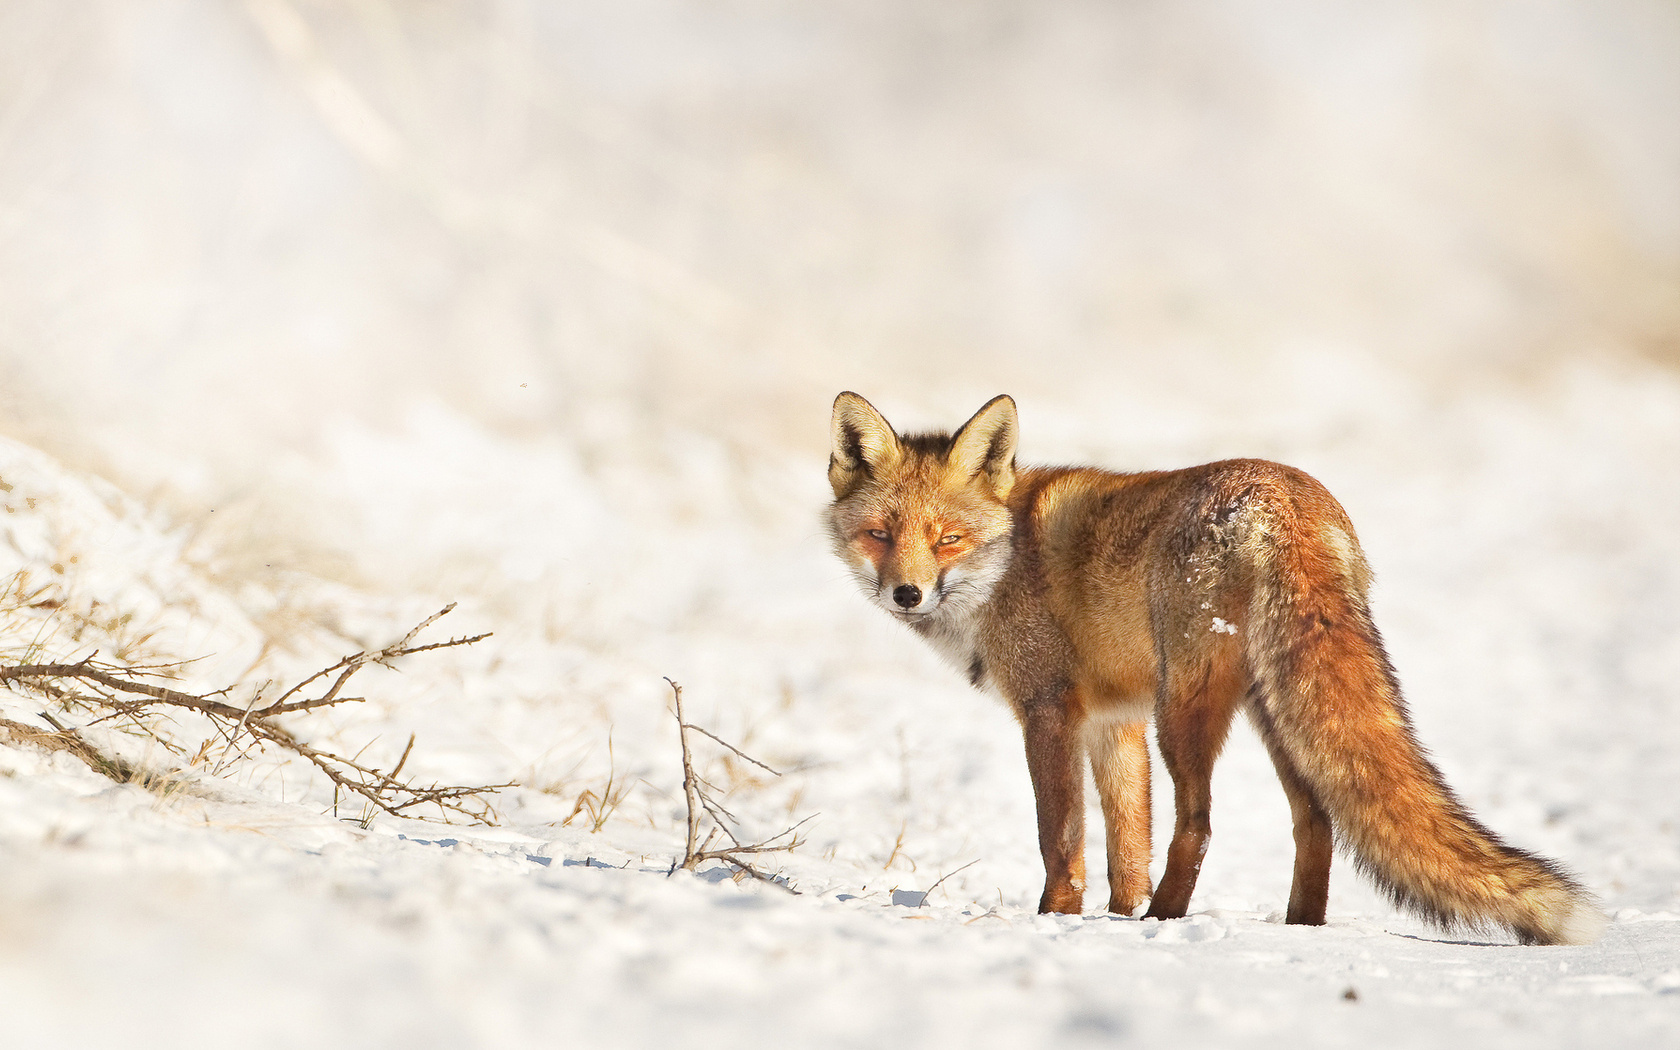 28280 download wallpaper Animals, Fox screensavers and pictures for free